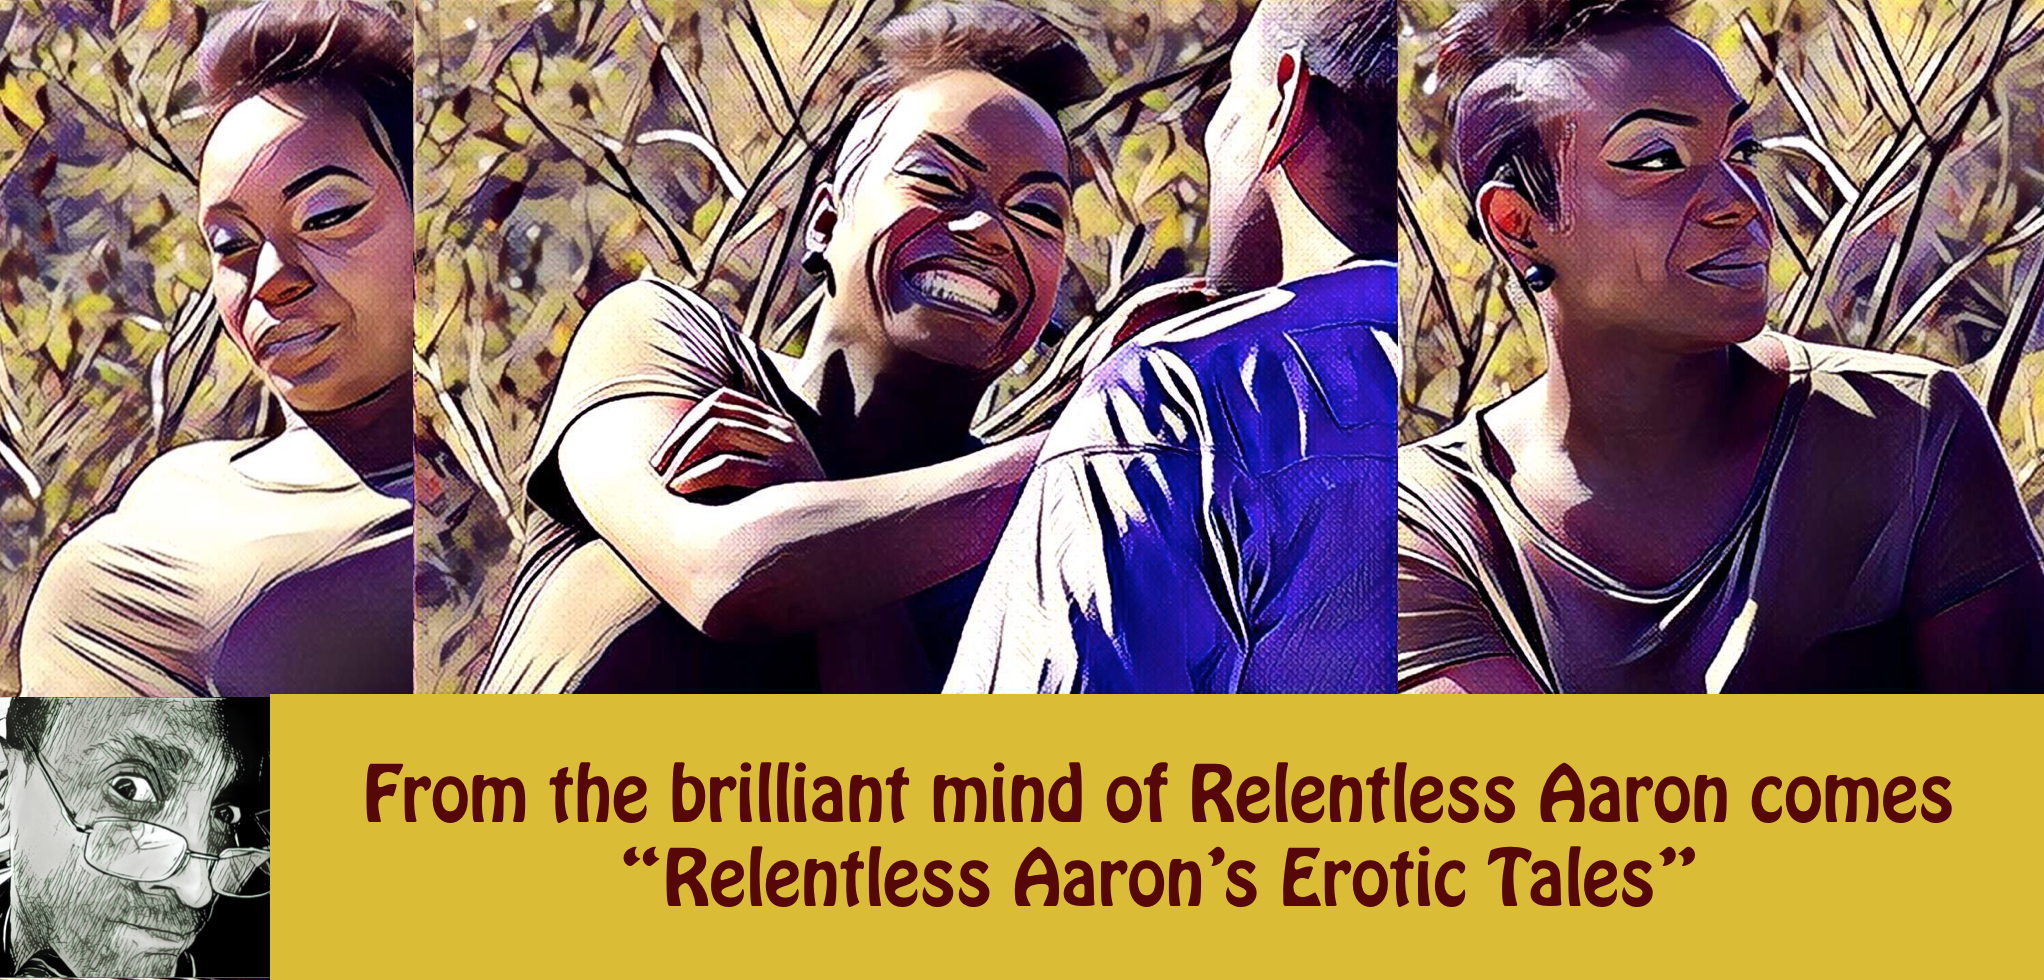 Relentless Aaron's Erotic Tales - Episode 1